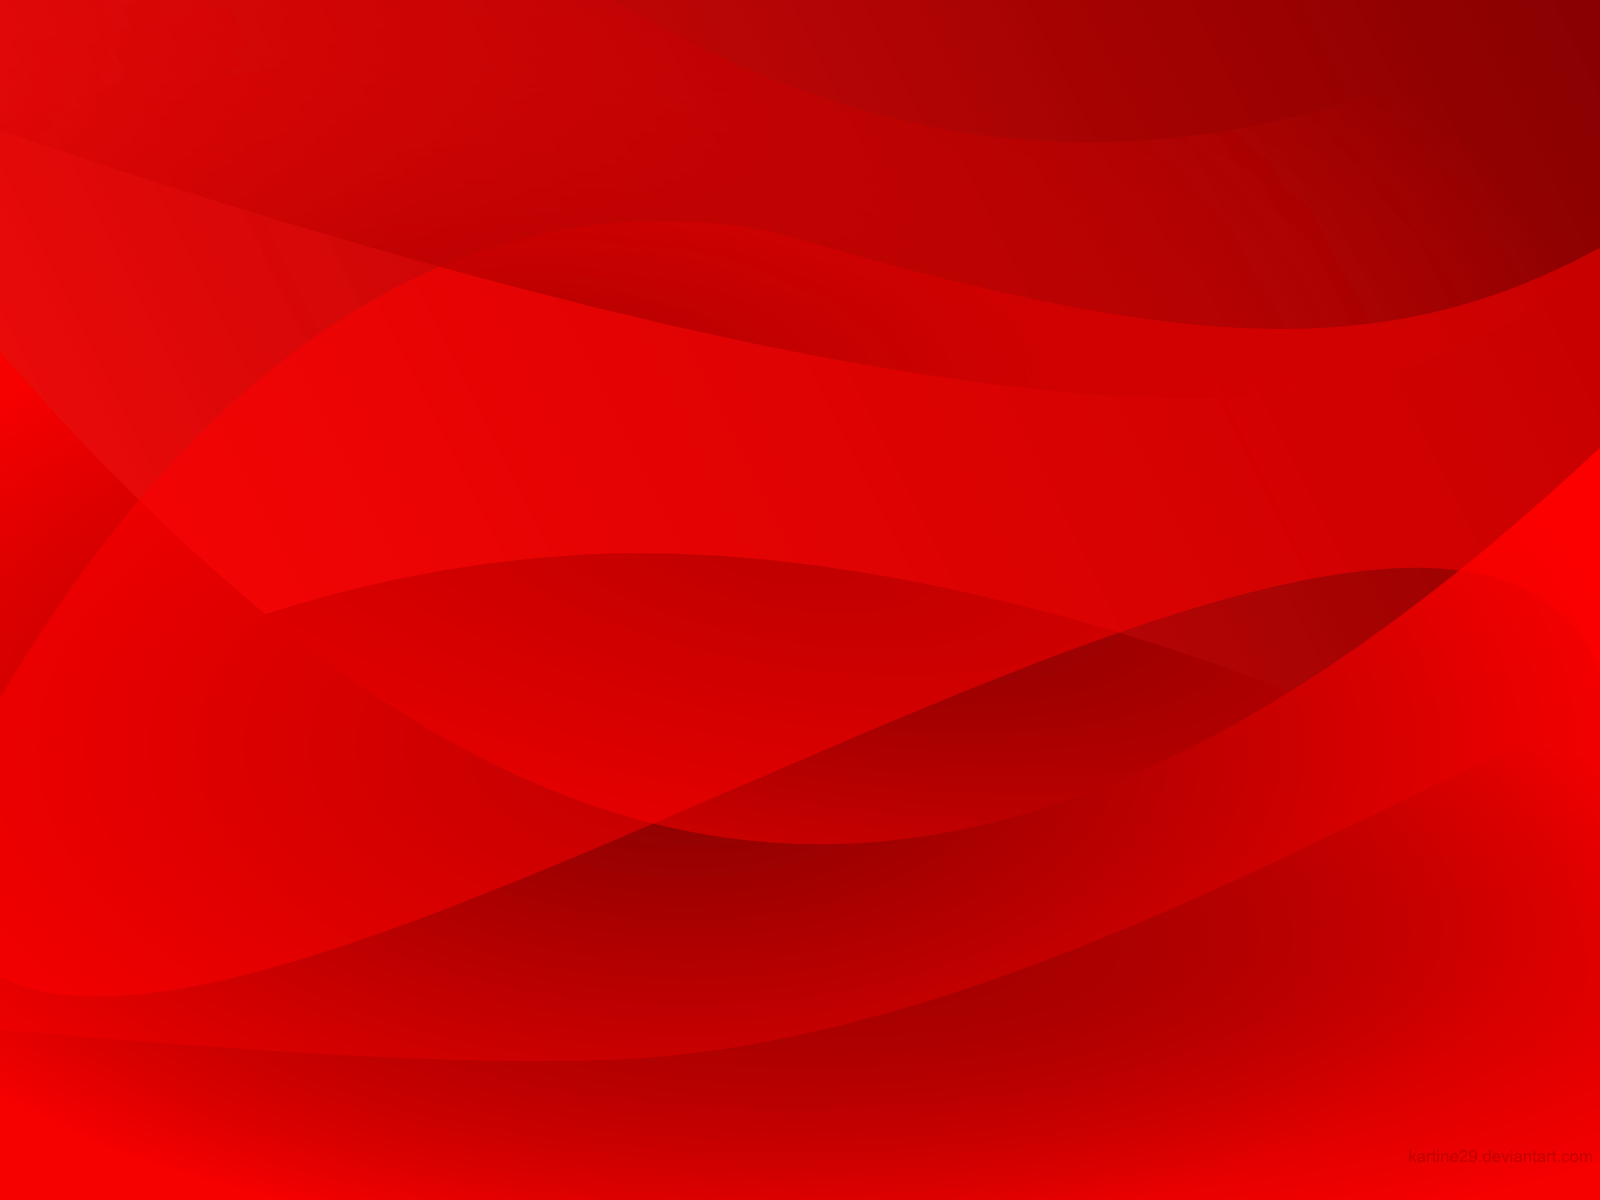 Red Background Images Powerpoint Backgrounds For Free Powerpoint Templates